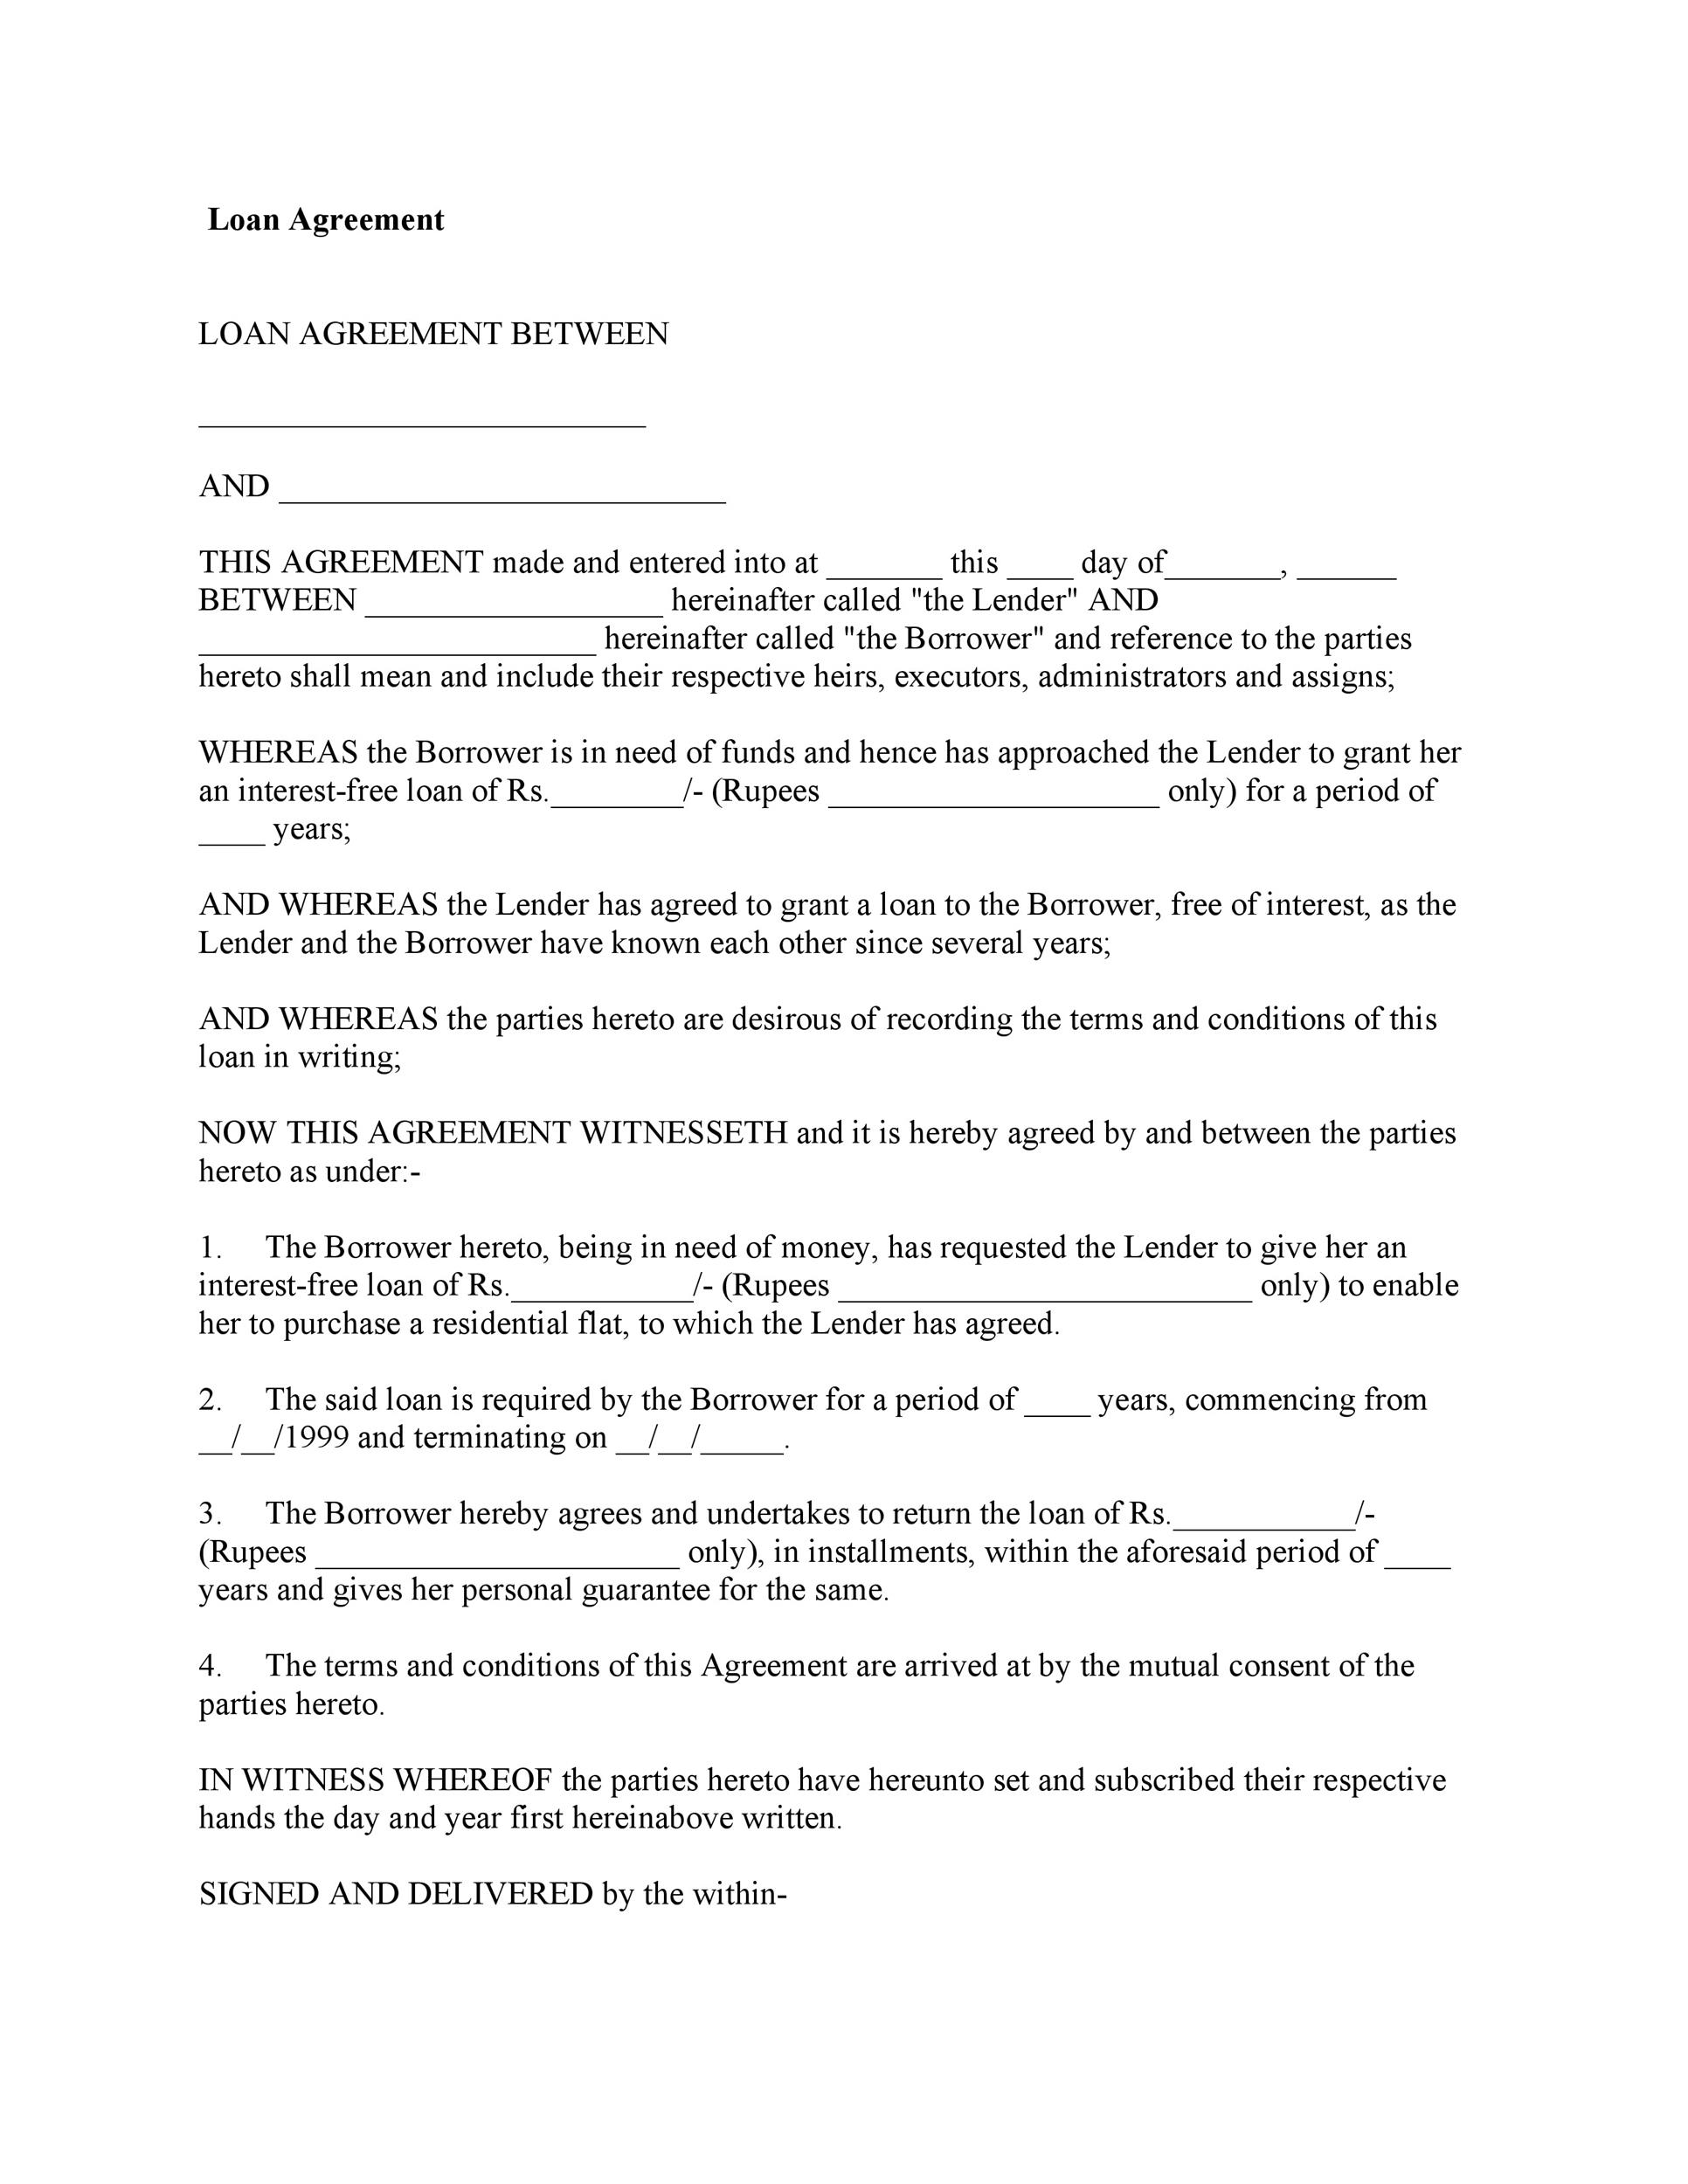 Loan Agreement Template Template Lab – Interest Free Loan Agreement Template